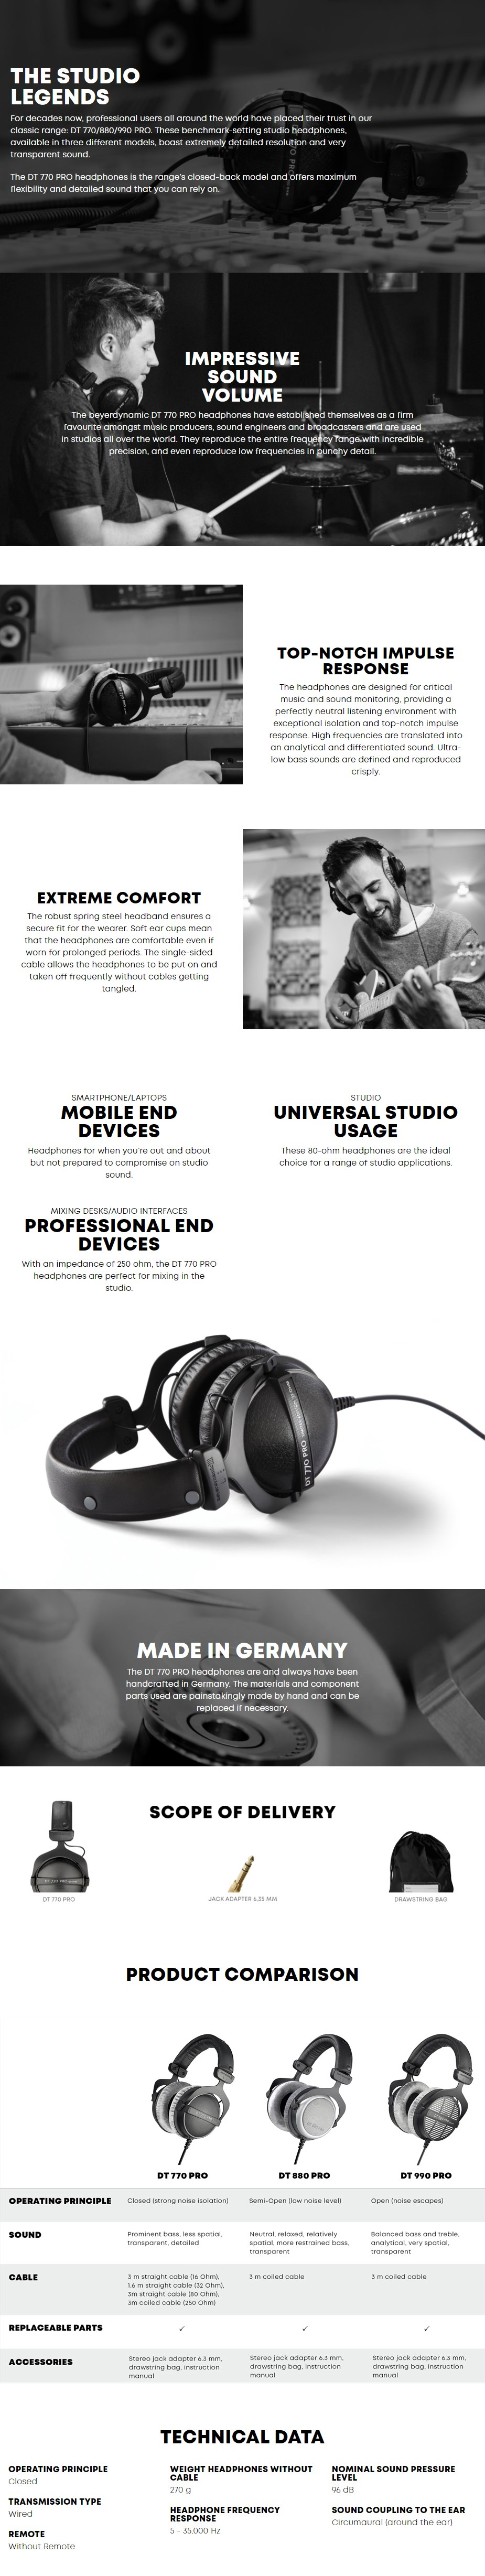 Beyerdynamic DT 770 Pro Closed-Back Studio Headphones - 80 Ohms - Overview 1